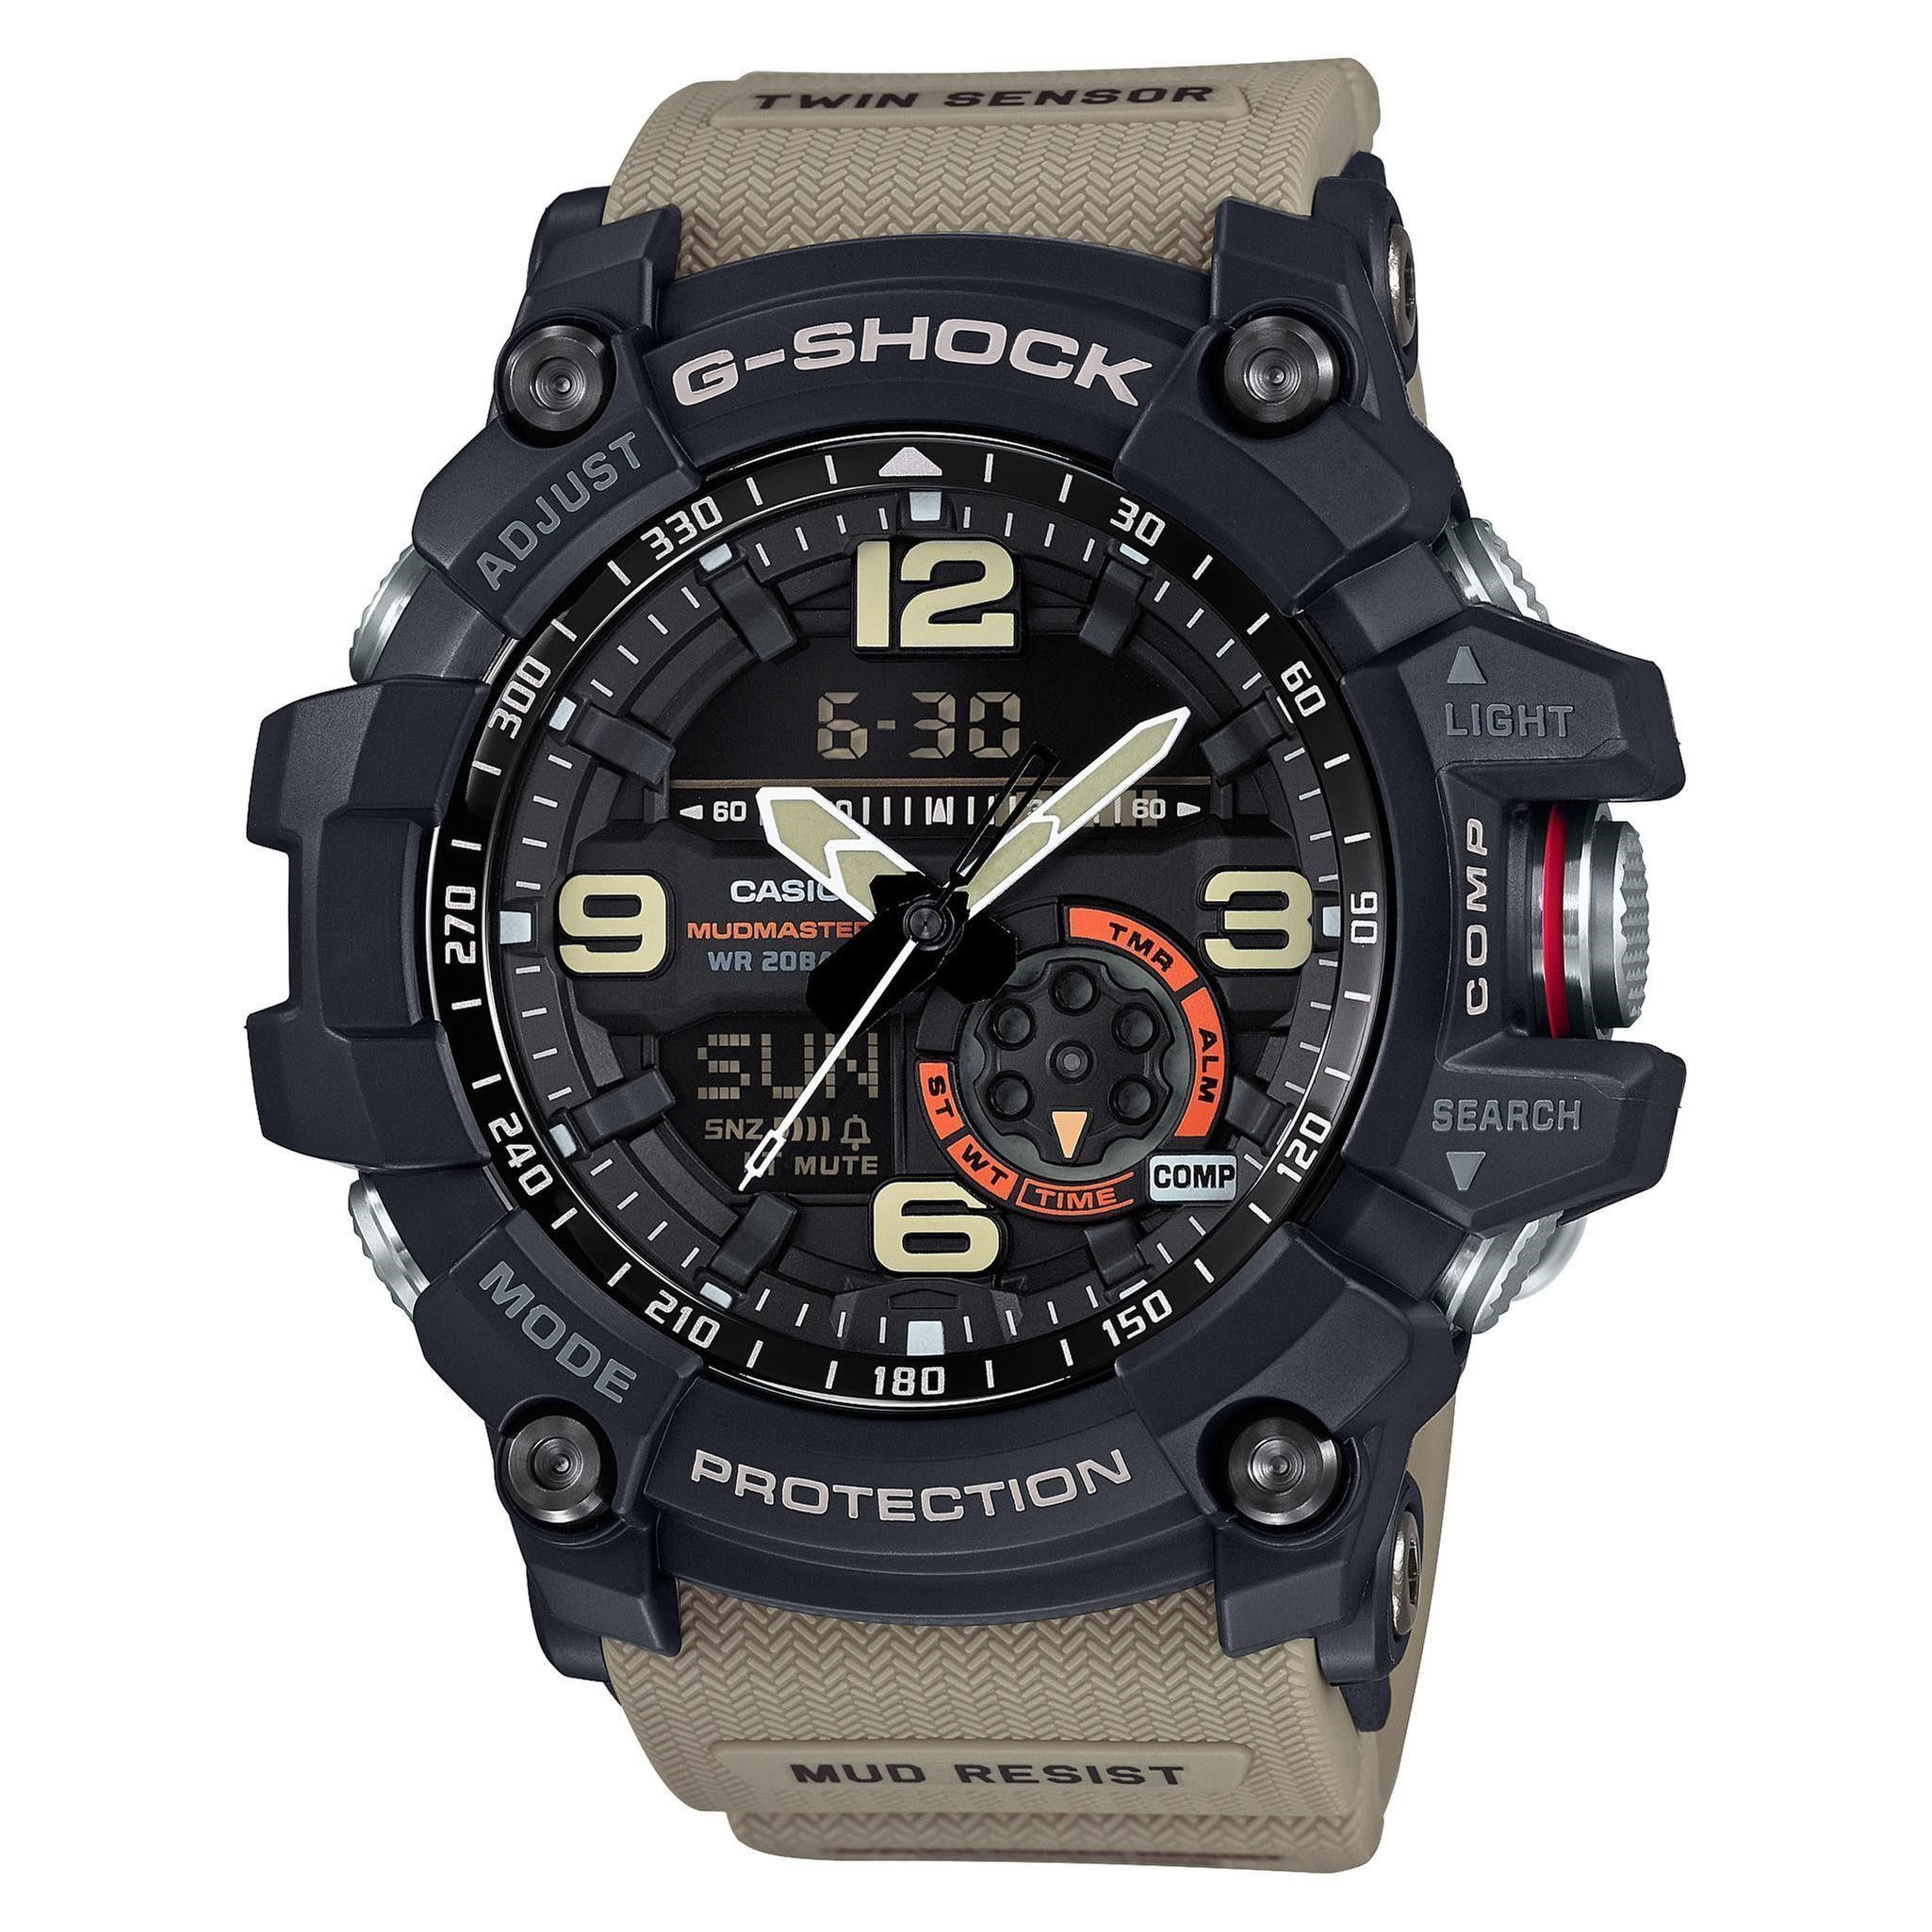 product mudmaster g rubber watches nigeria black ajebomarket from casio shock ng price watch en